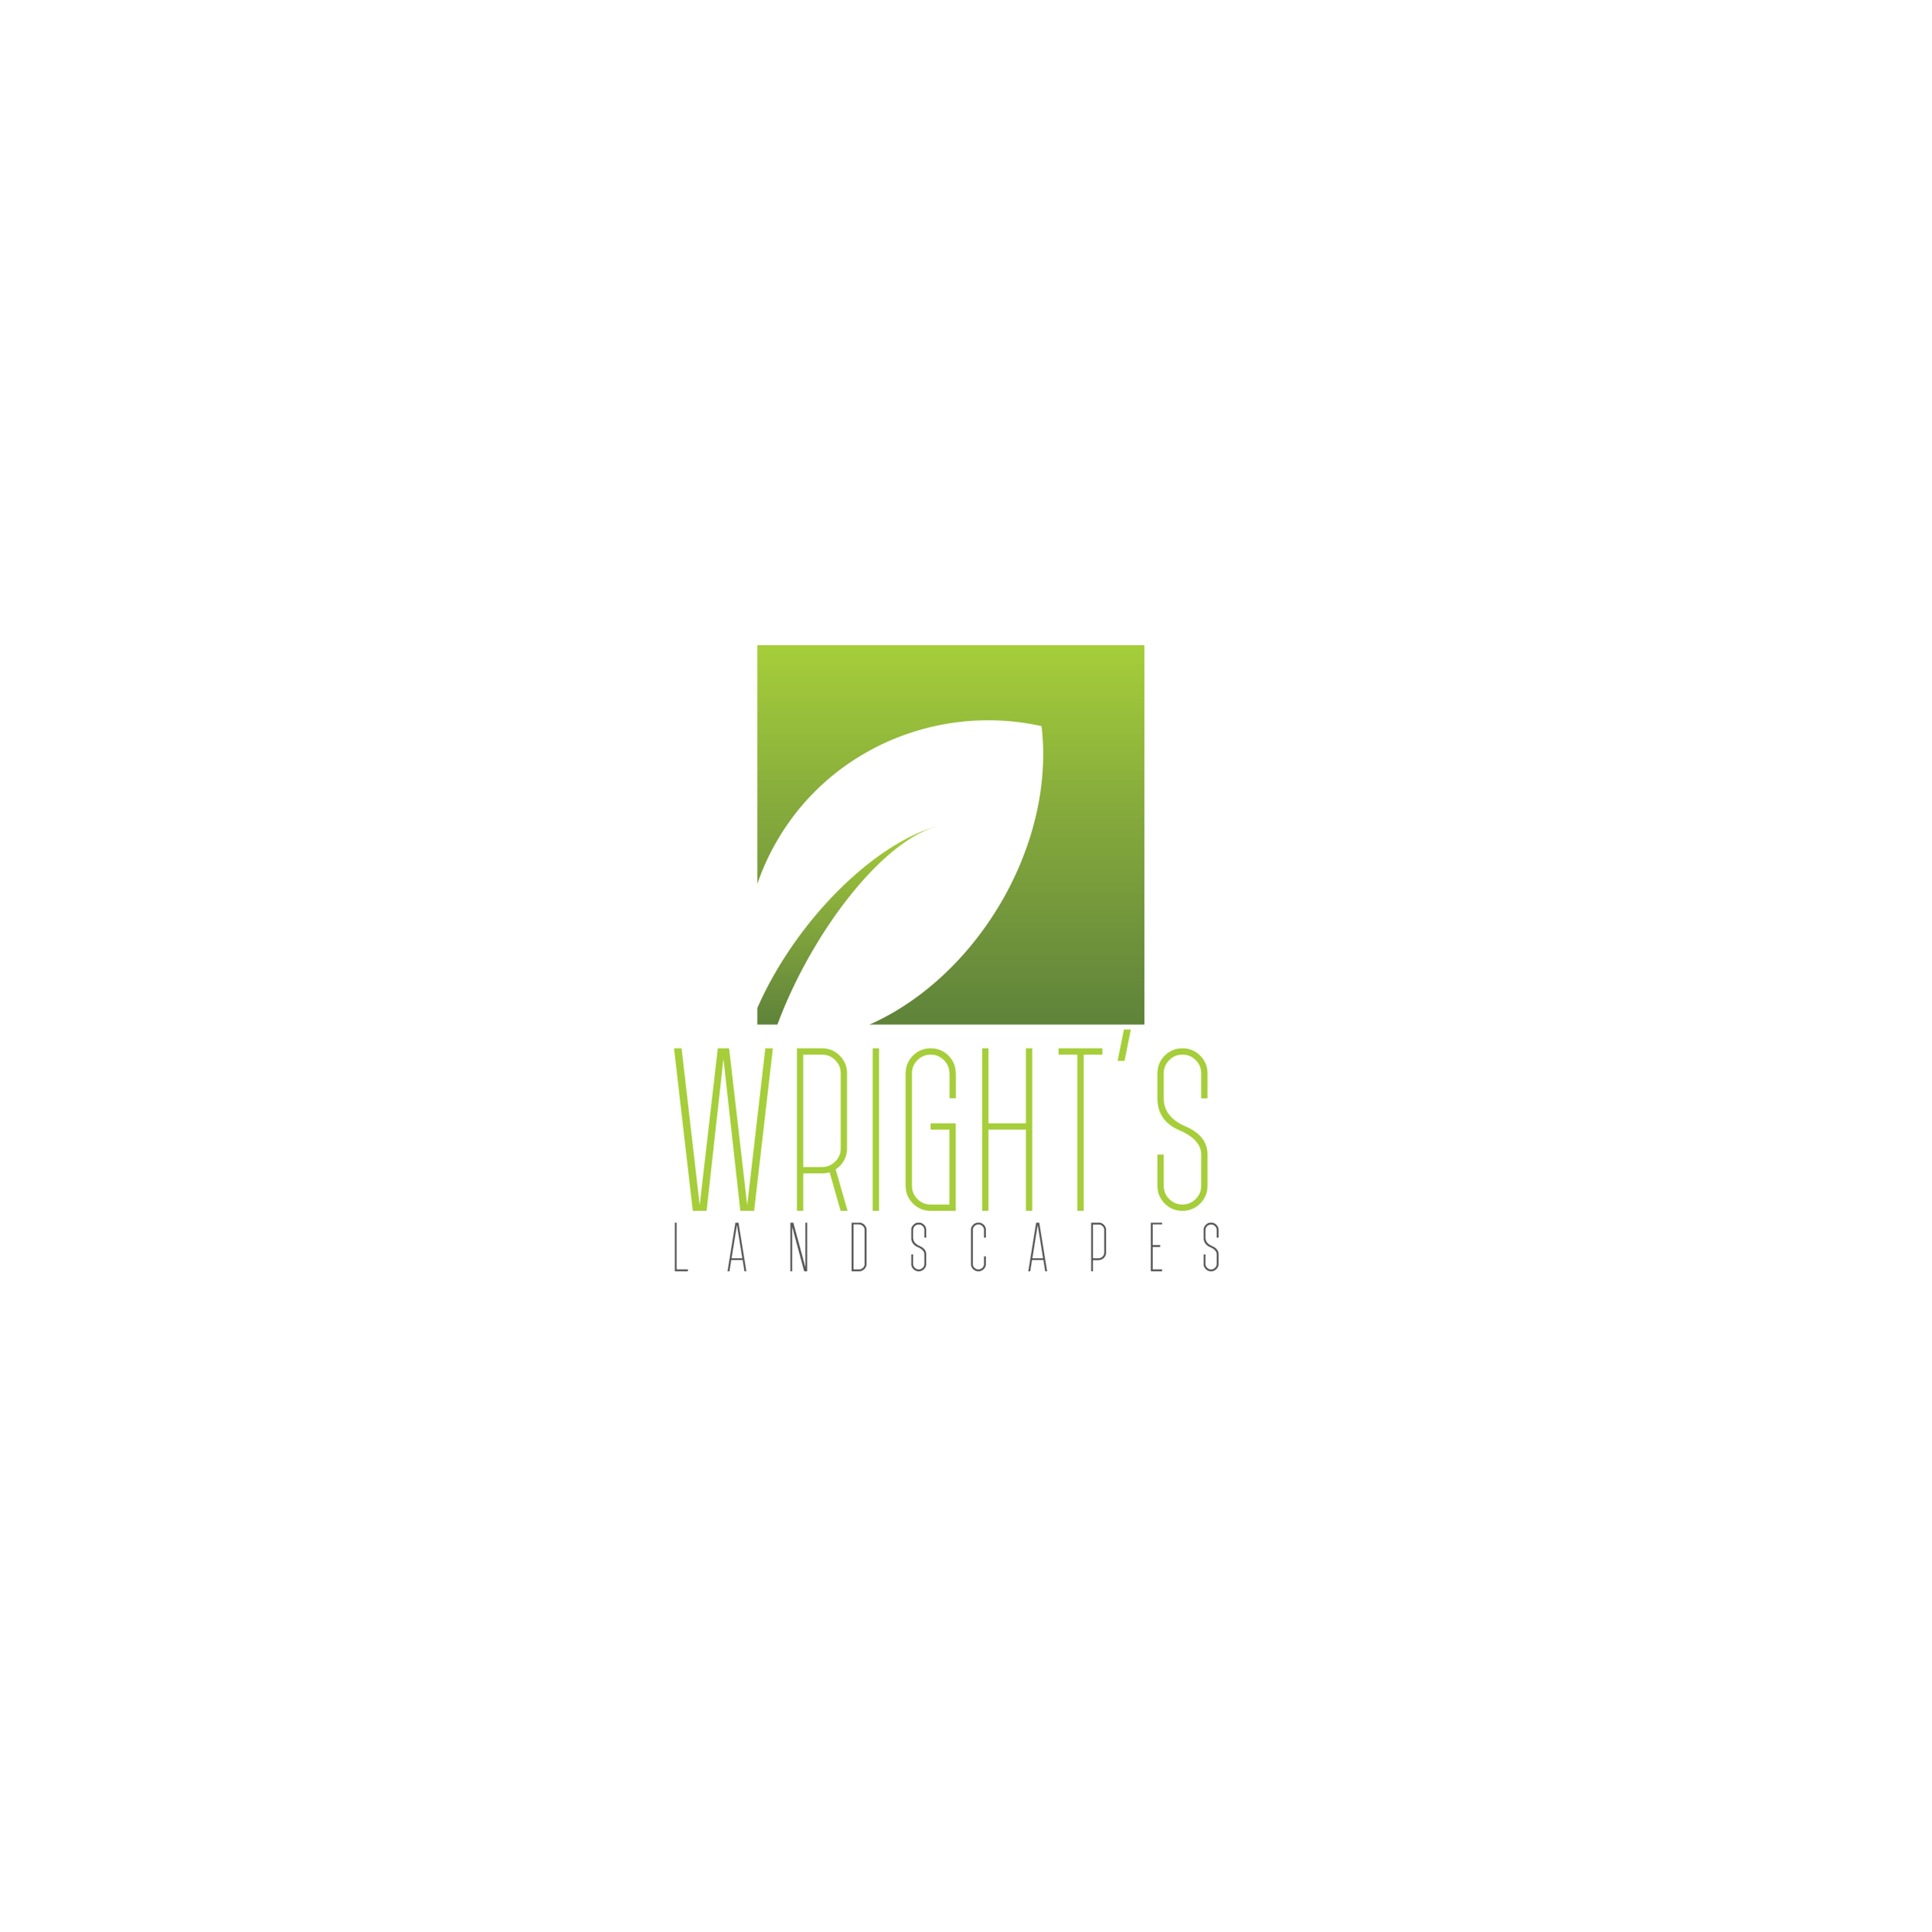 Wright's Logo Design